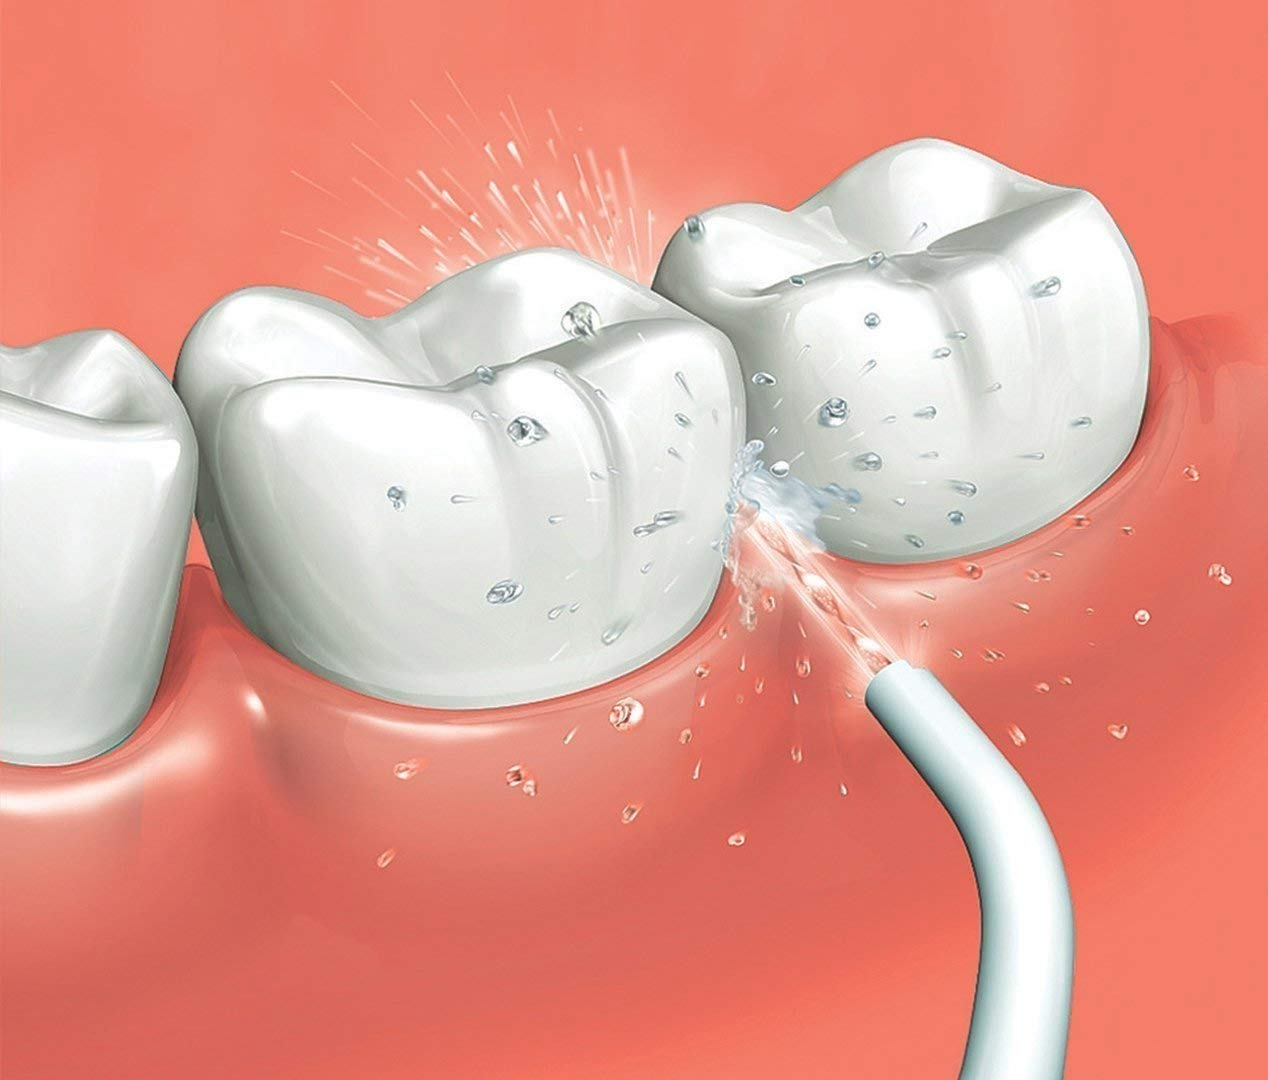 Panasonic Oral Irrigator Illustration